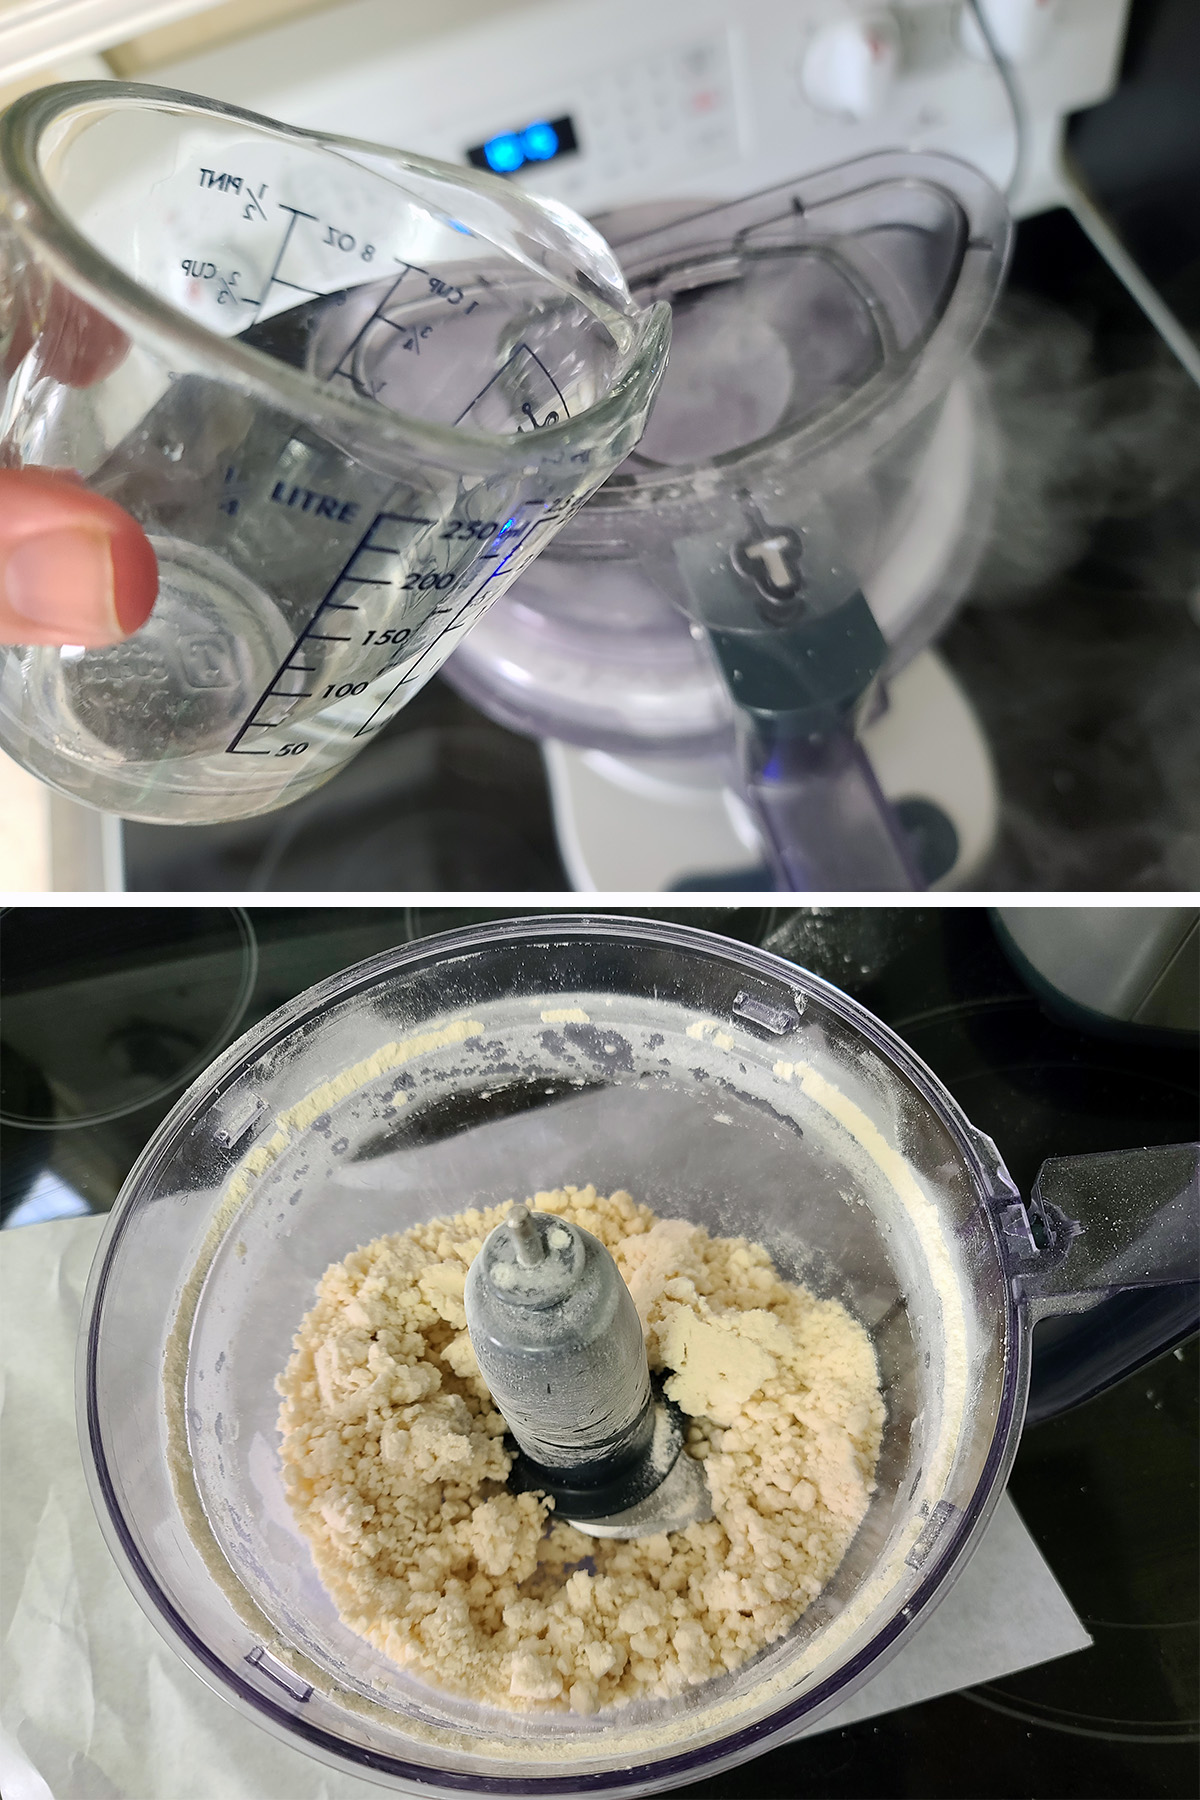 Water is being added to a food processor with lard and cassava flour in it.